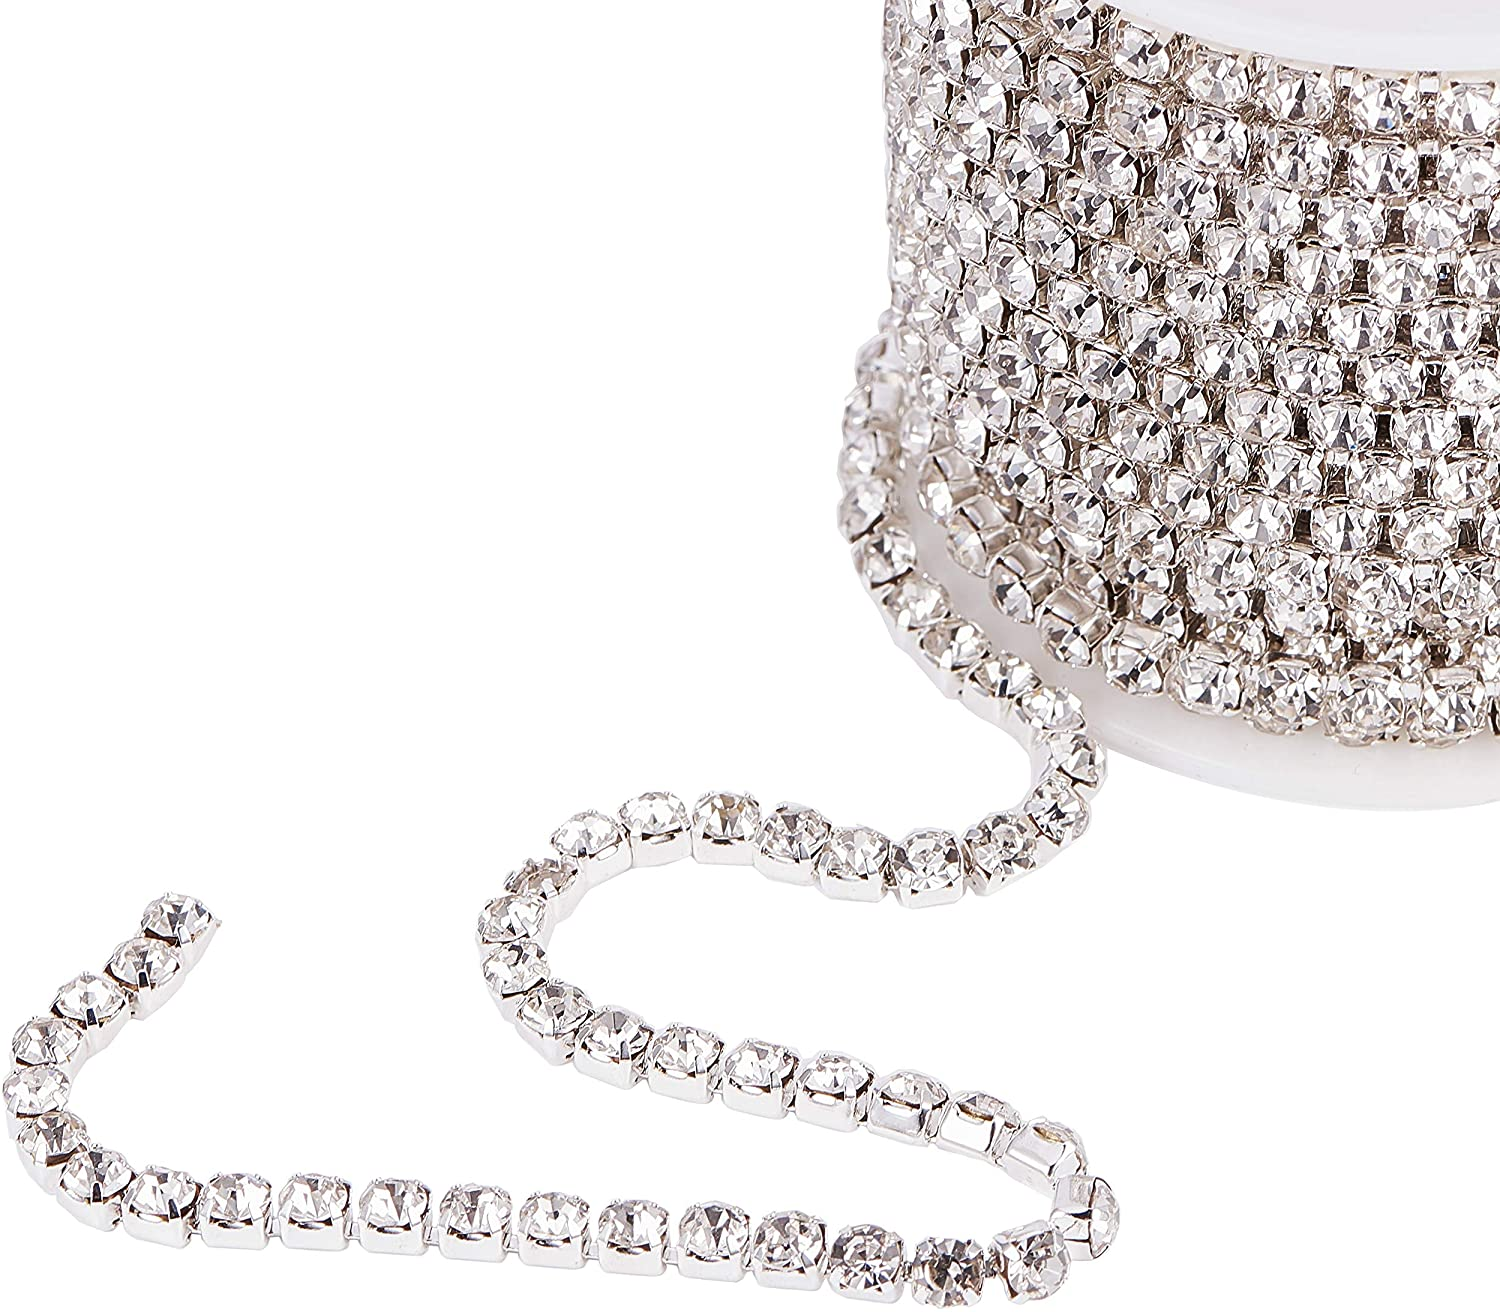 PH PandaHall 10 Yards 4mm Crystal Rhinestone Close Chain Clear Trimming Claw Chain Sewing Craft About 1960pcs Rhinestones - Crystal (Silver Bottom)